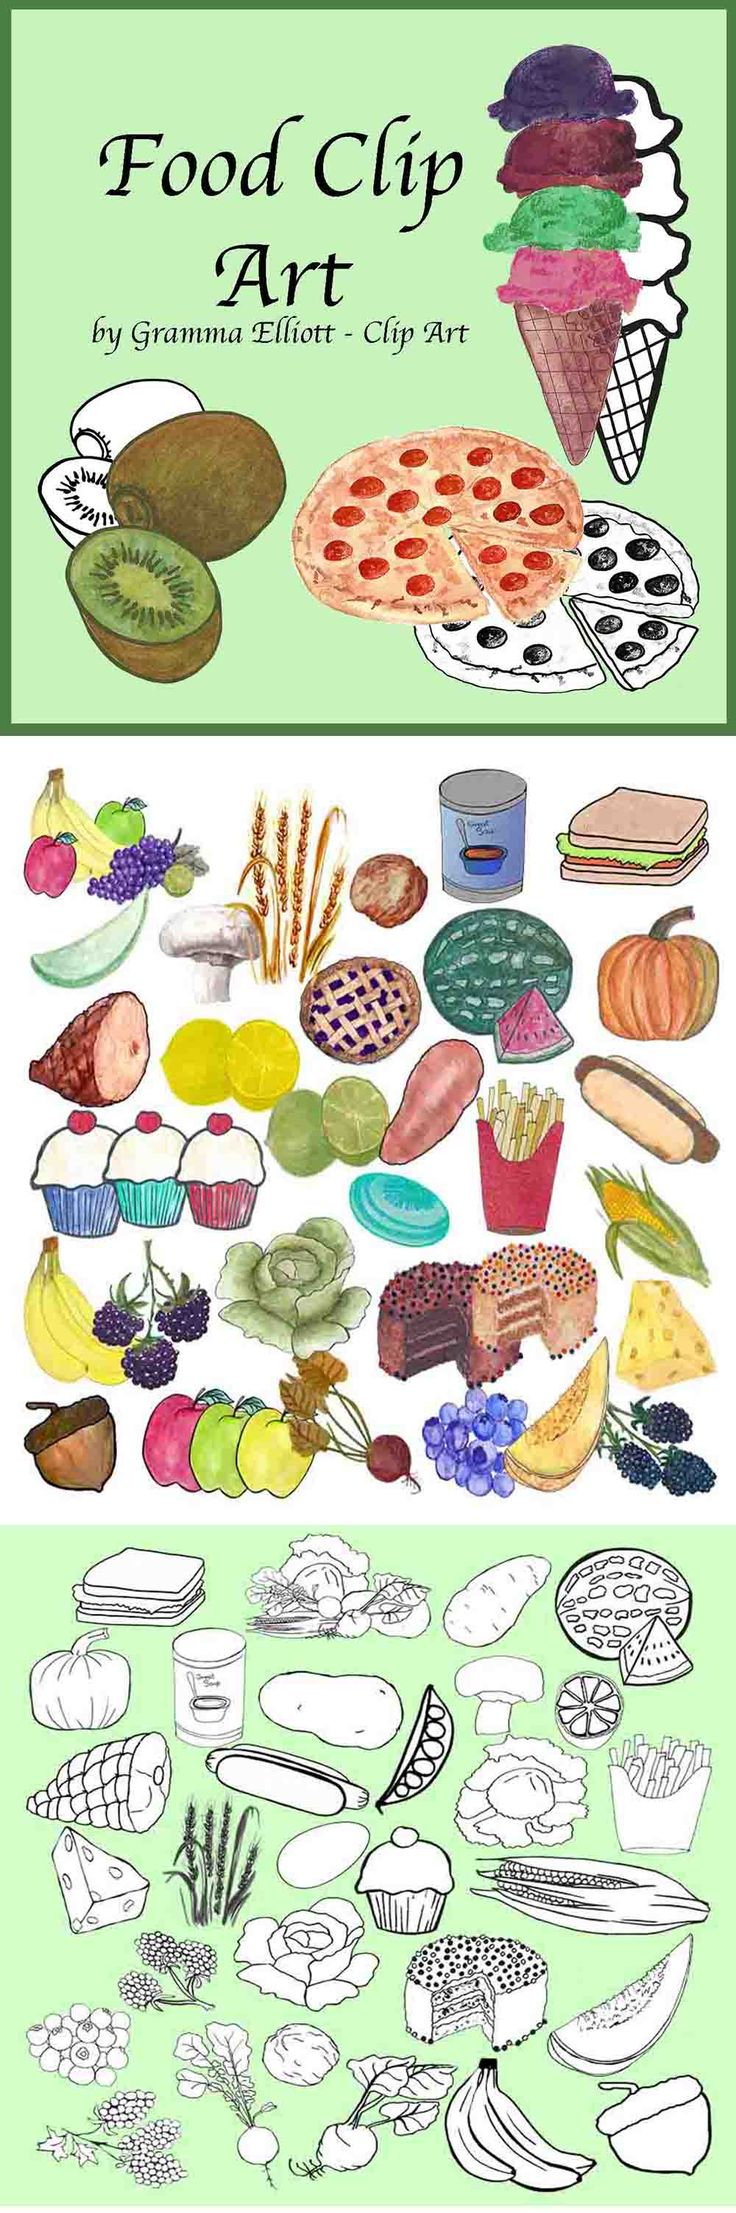 Acorn, Apple, Bananas, Beet, Blackberries, Blueberries, Lettuce, Cake, Cantaloupe, Cheese, Corn, Cupcakes, Egg, Fries, Grapes, Ham, Honeydew rind, Hot dog, Ice cream cone, Kiwi Lemons, Lettuce, Limes, Mushroom, Peas, Pie, Pizza, Pretzel, Pumpkin, Radish, Red Raspberries, Sandwich, Soup, Spud (potato), Vegetables, Walnut, Watermelon, Wheat, and Yam.   Food Clip Art includes these items in black line clip art and at least one color clip for each image. Each image is in .PNG format at 300 DPI.